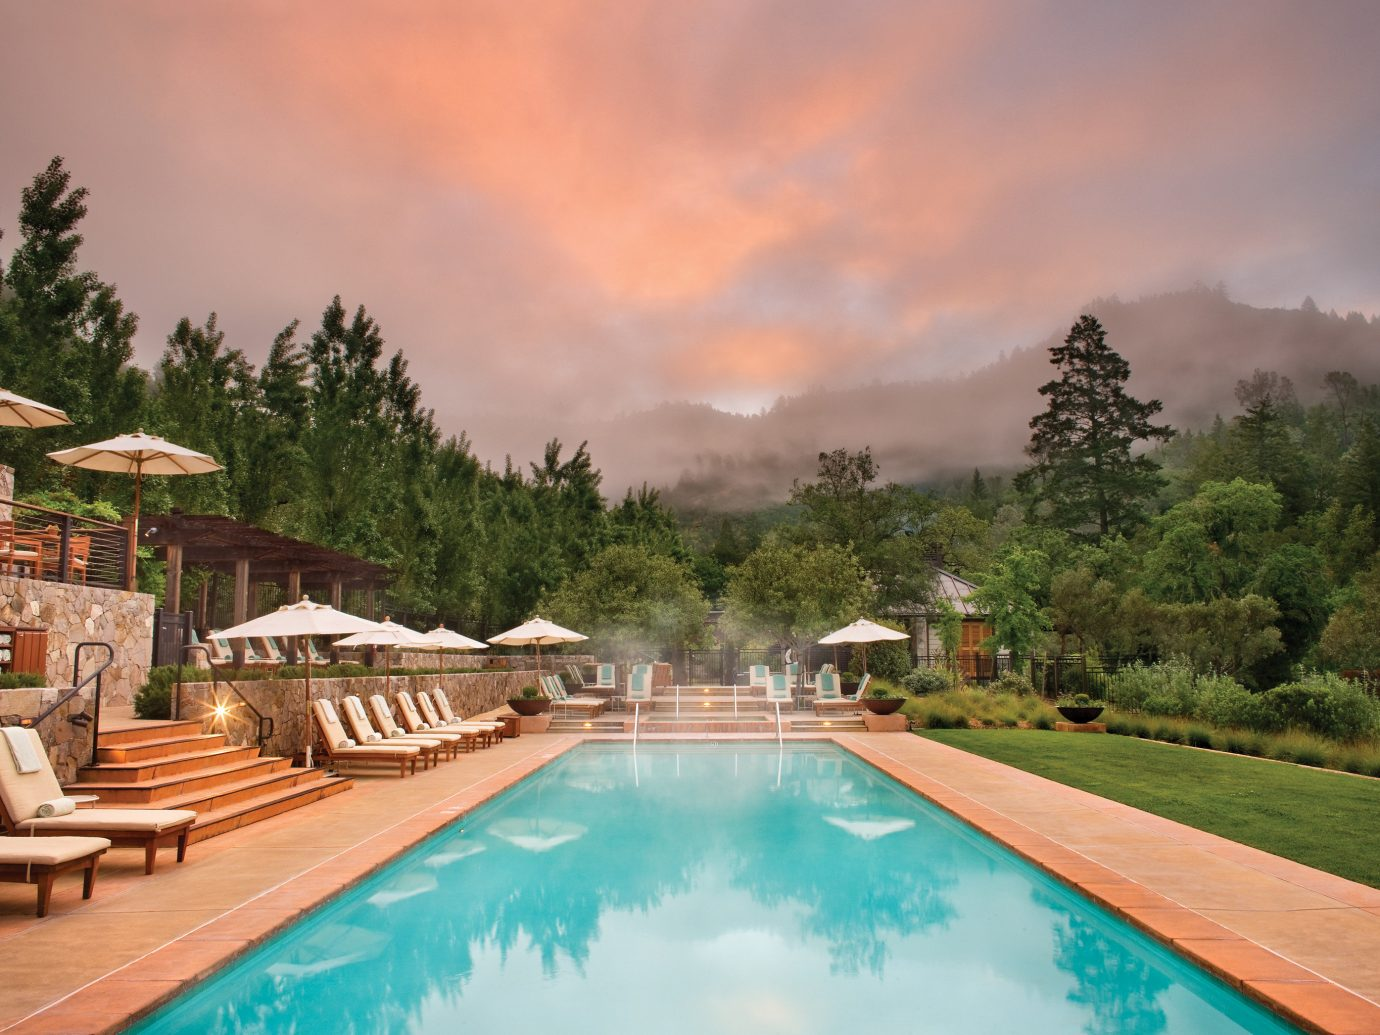 Eco Food + Drink Health + Wellness Hotels Luxury Outdoors Pool Ranch Romance Romantic Rustic Scenic views Spa Retreats Wellness tree outdoor swimming pool estate vacation Resort Villa